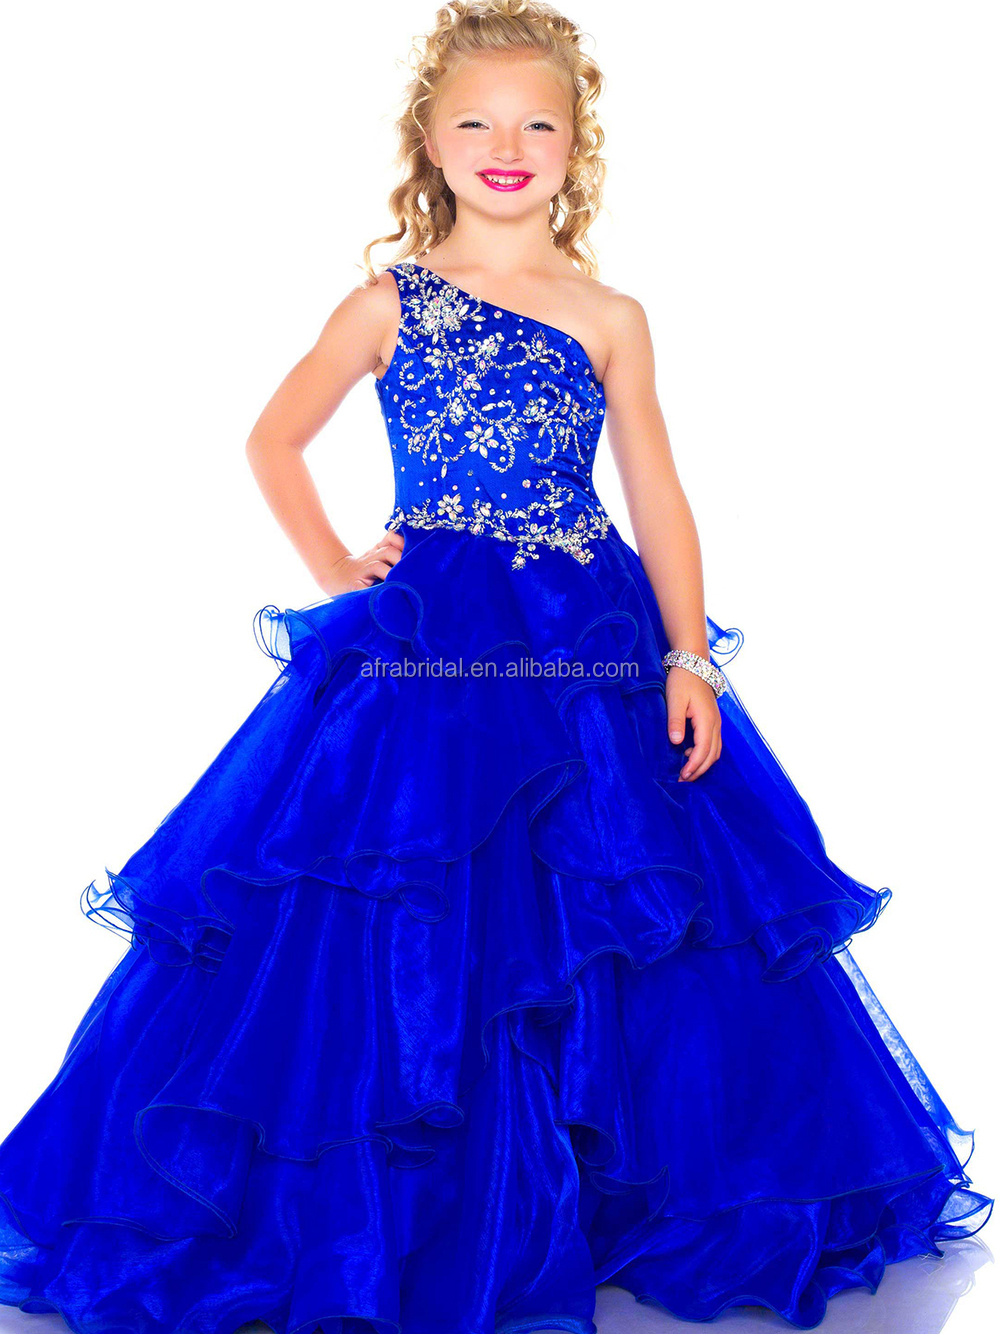 Sd653 Blue Ball Gown Dresses For Kids Princess Ball Gown Prom ...